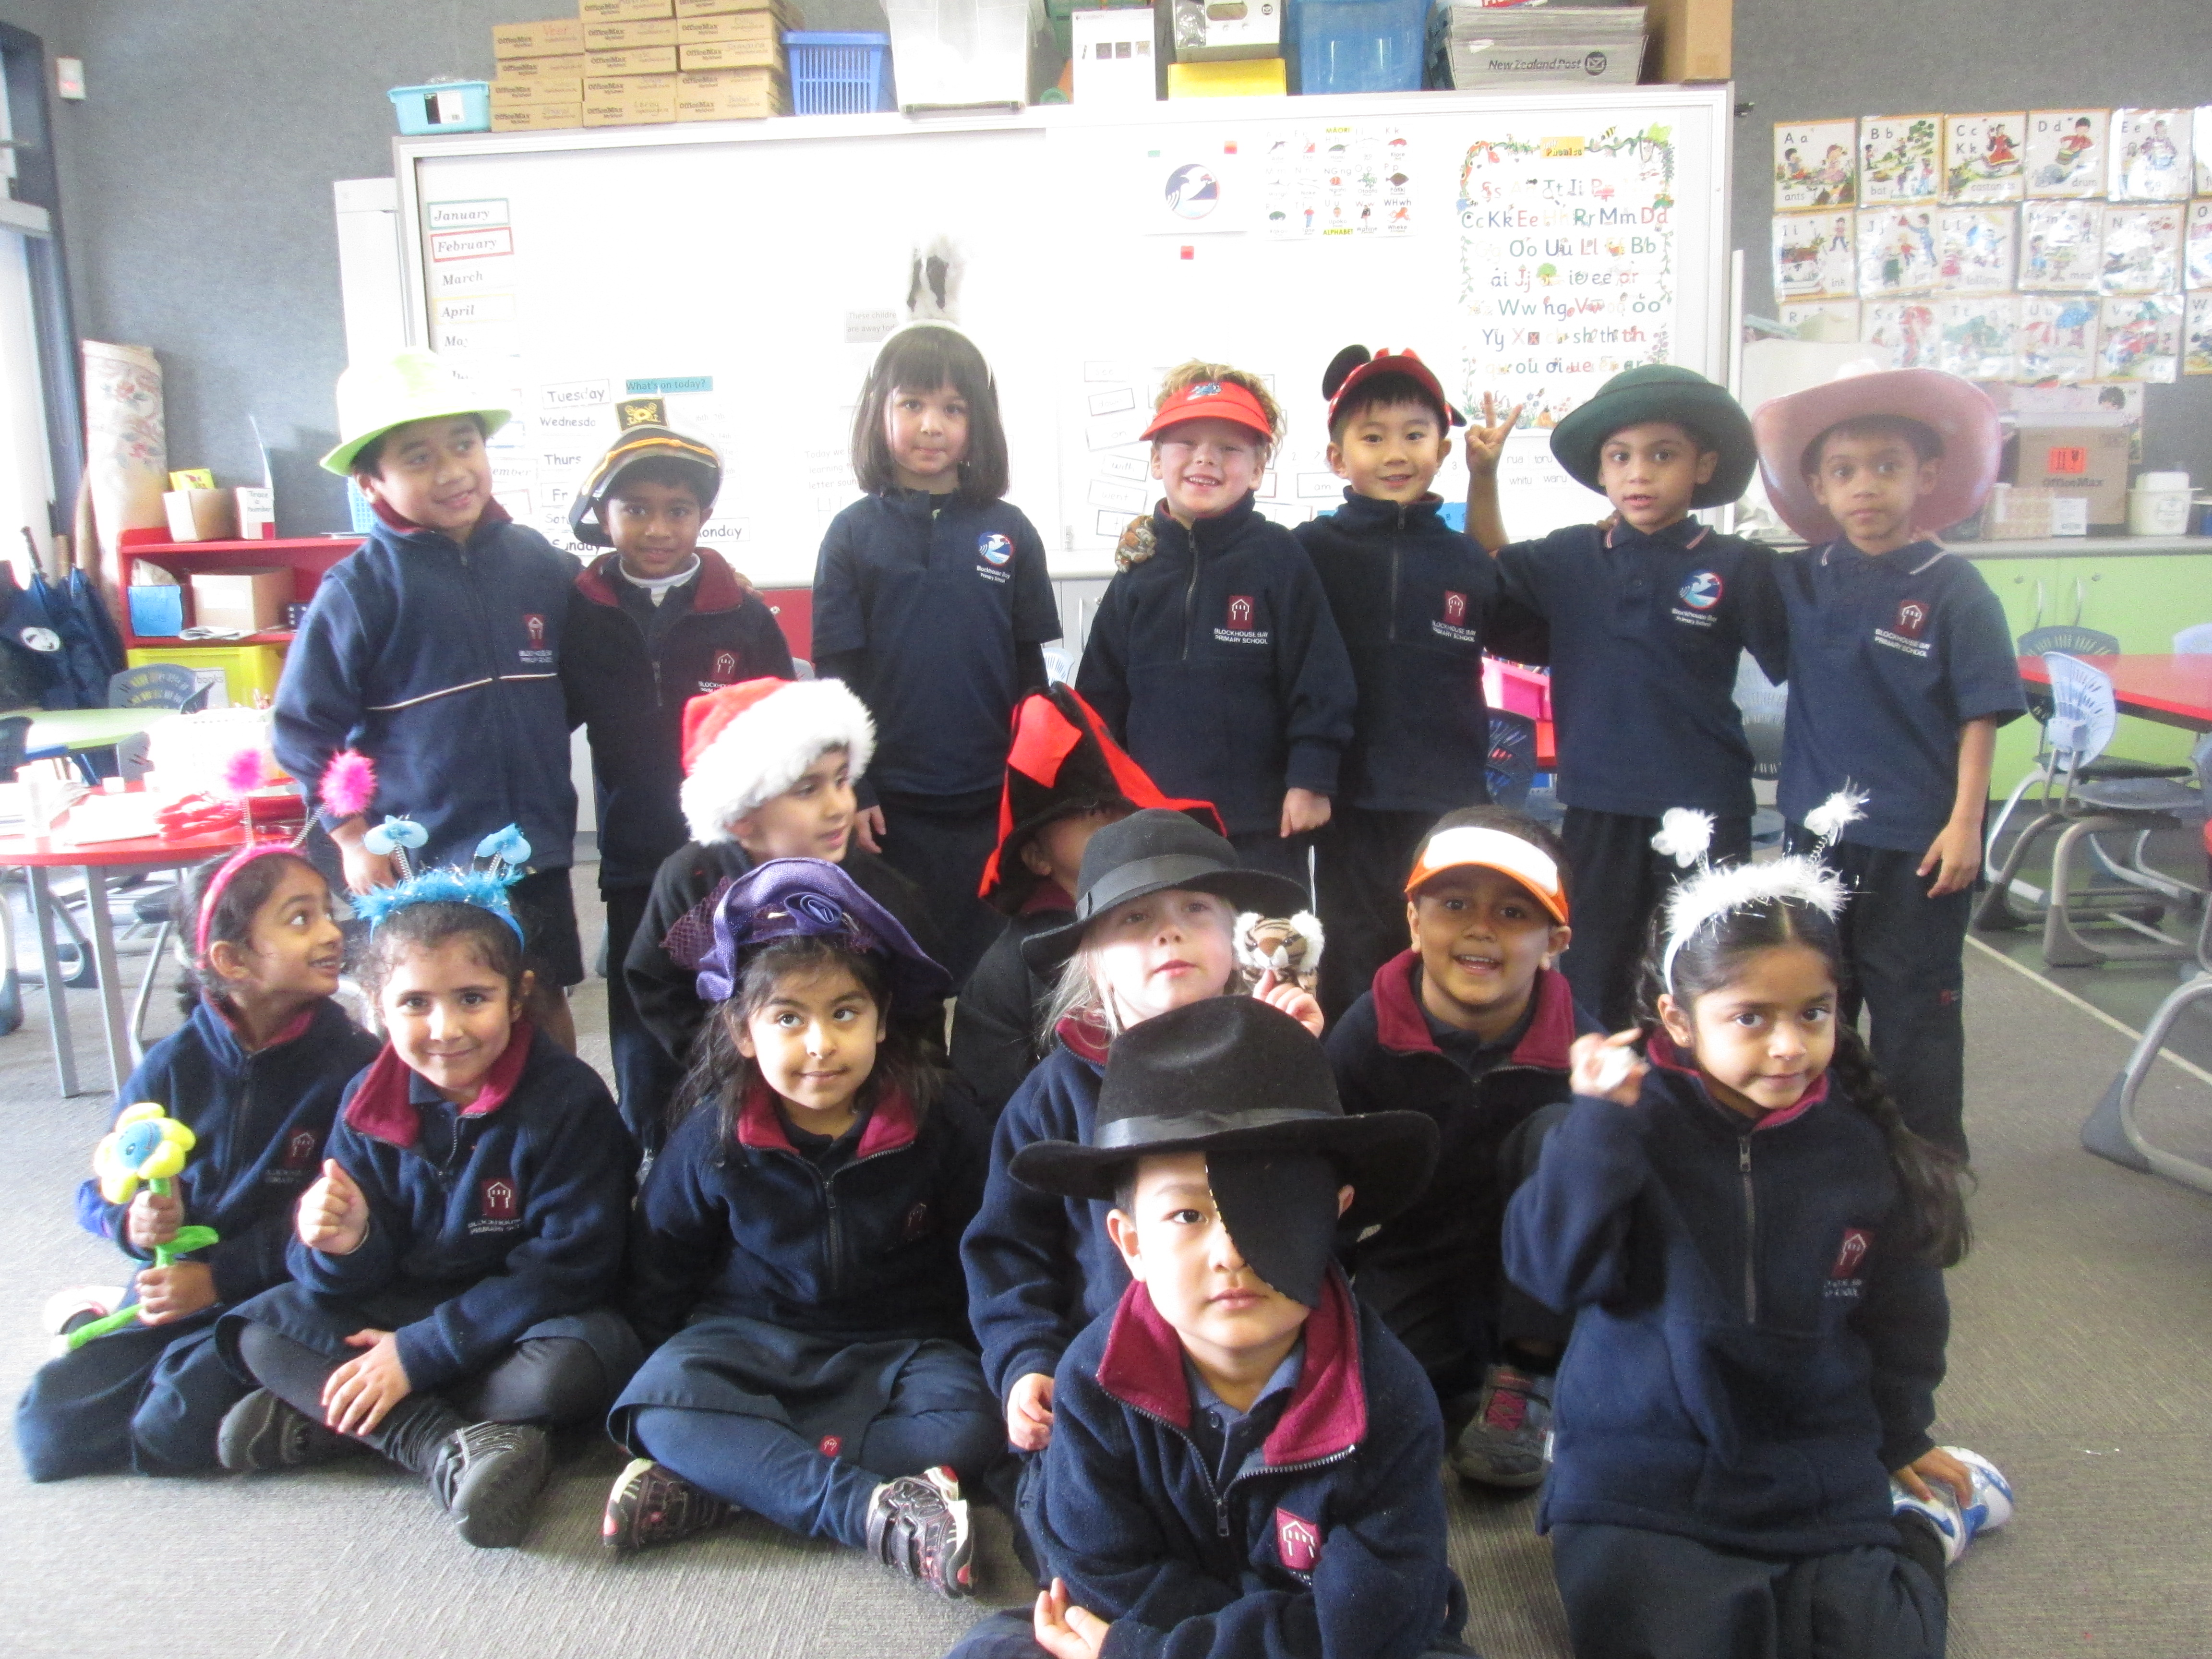 Blockhouse Bay Primary School - Hats hats hats!